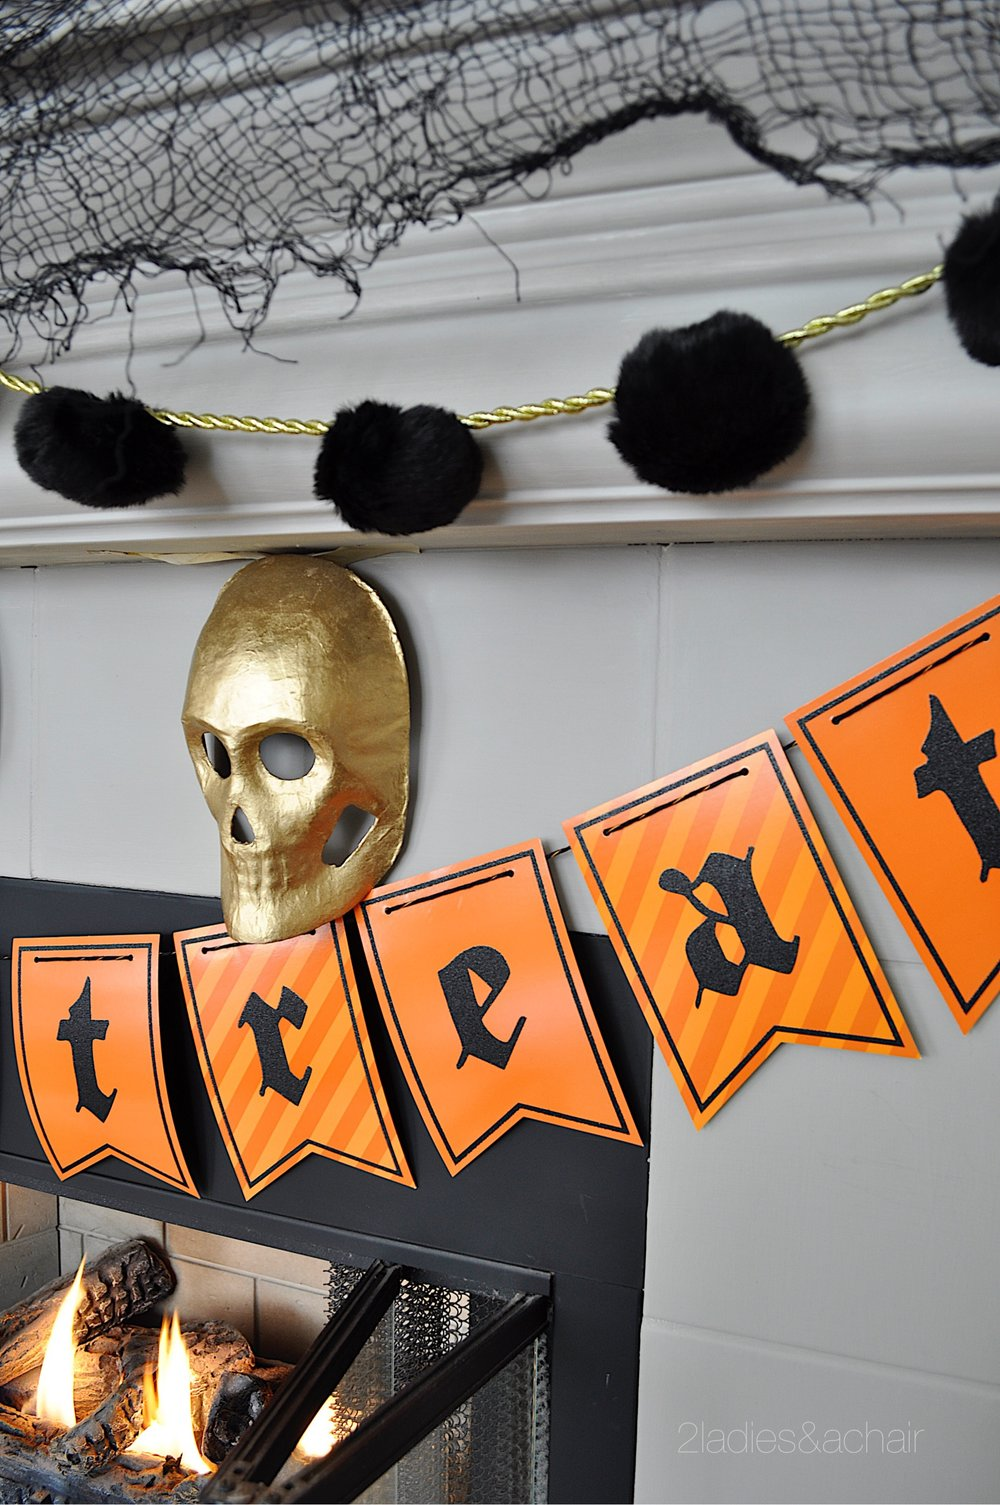 halloween mantel decorations IMG_8211.JPG